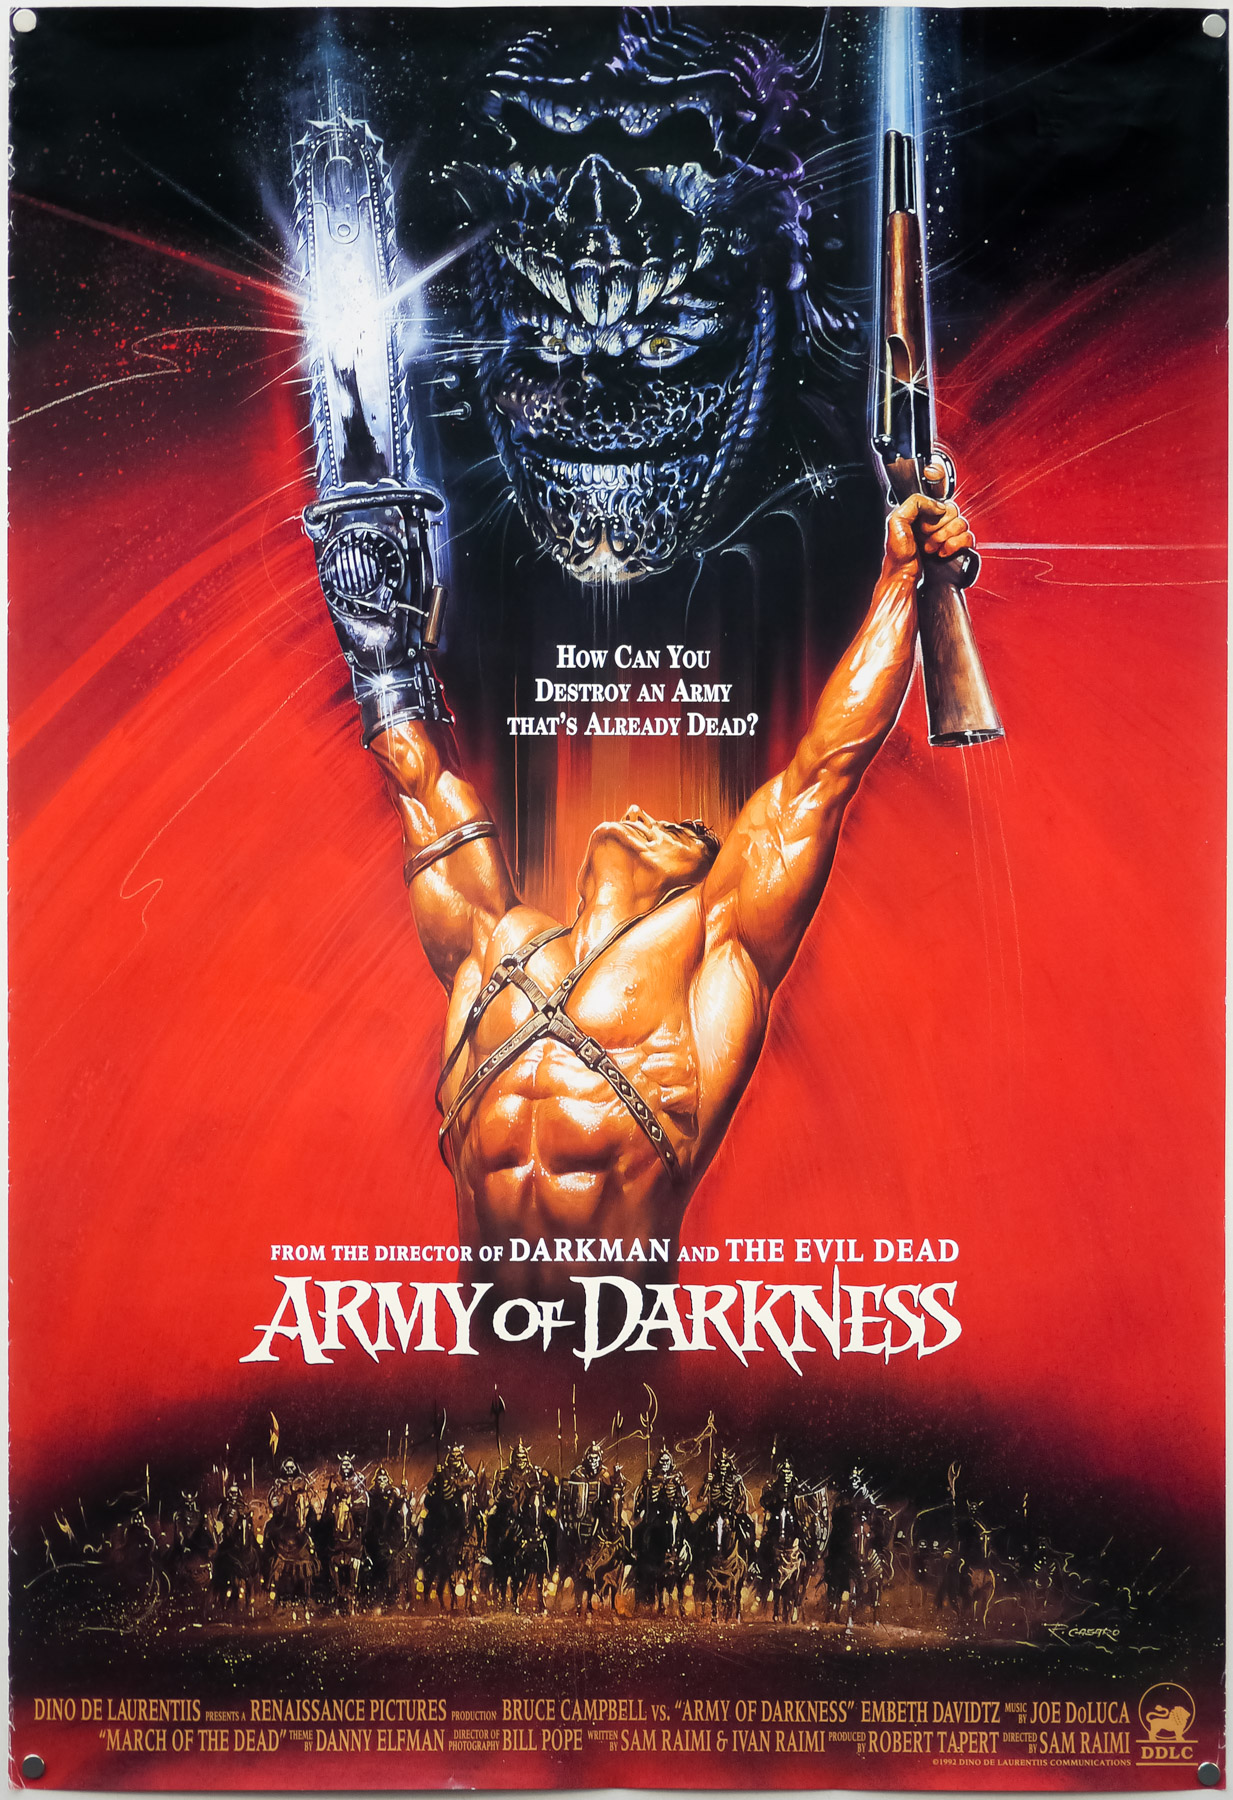 The international one sheet for Sam Raimi's Army of Darkness, designed and painted by Renato Casaro (1992)